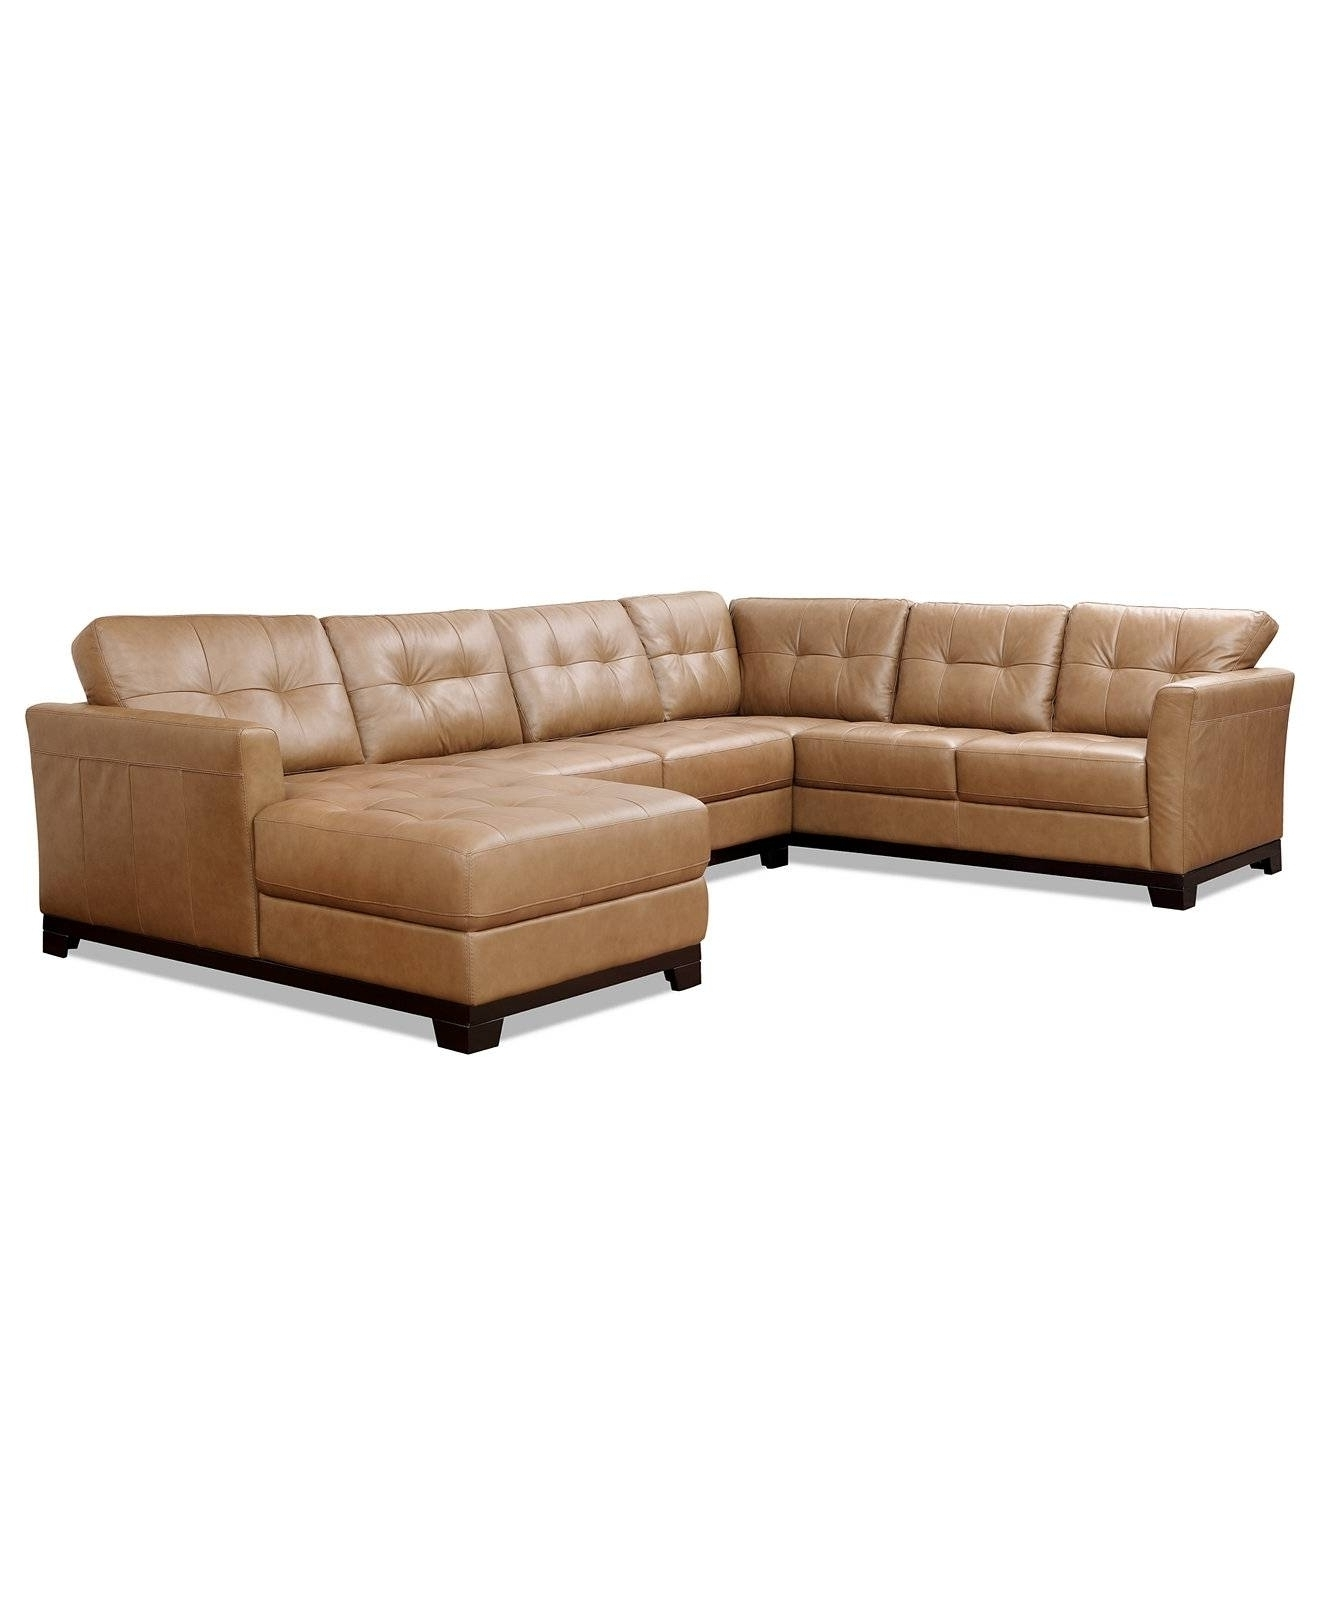 Macys Leather Sofas In 2018 Leather Sectional Sofa Macys • Leather Sofa (View 15 of 15)